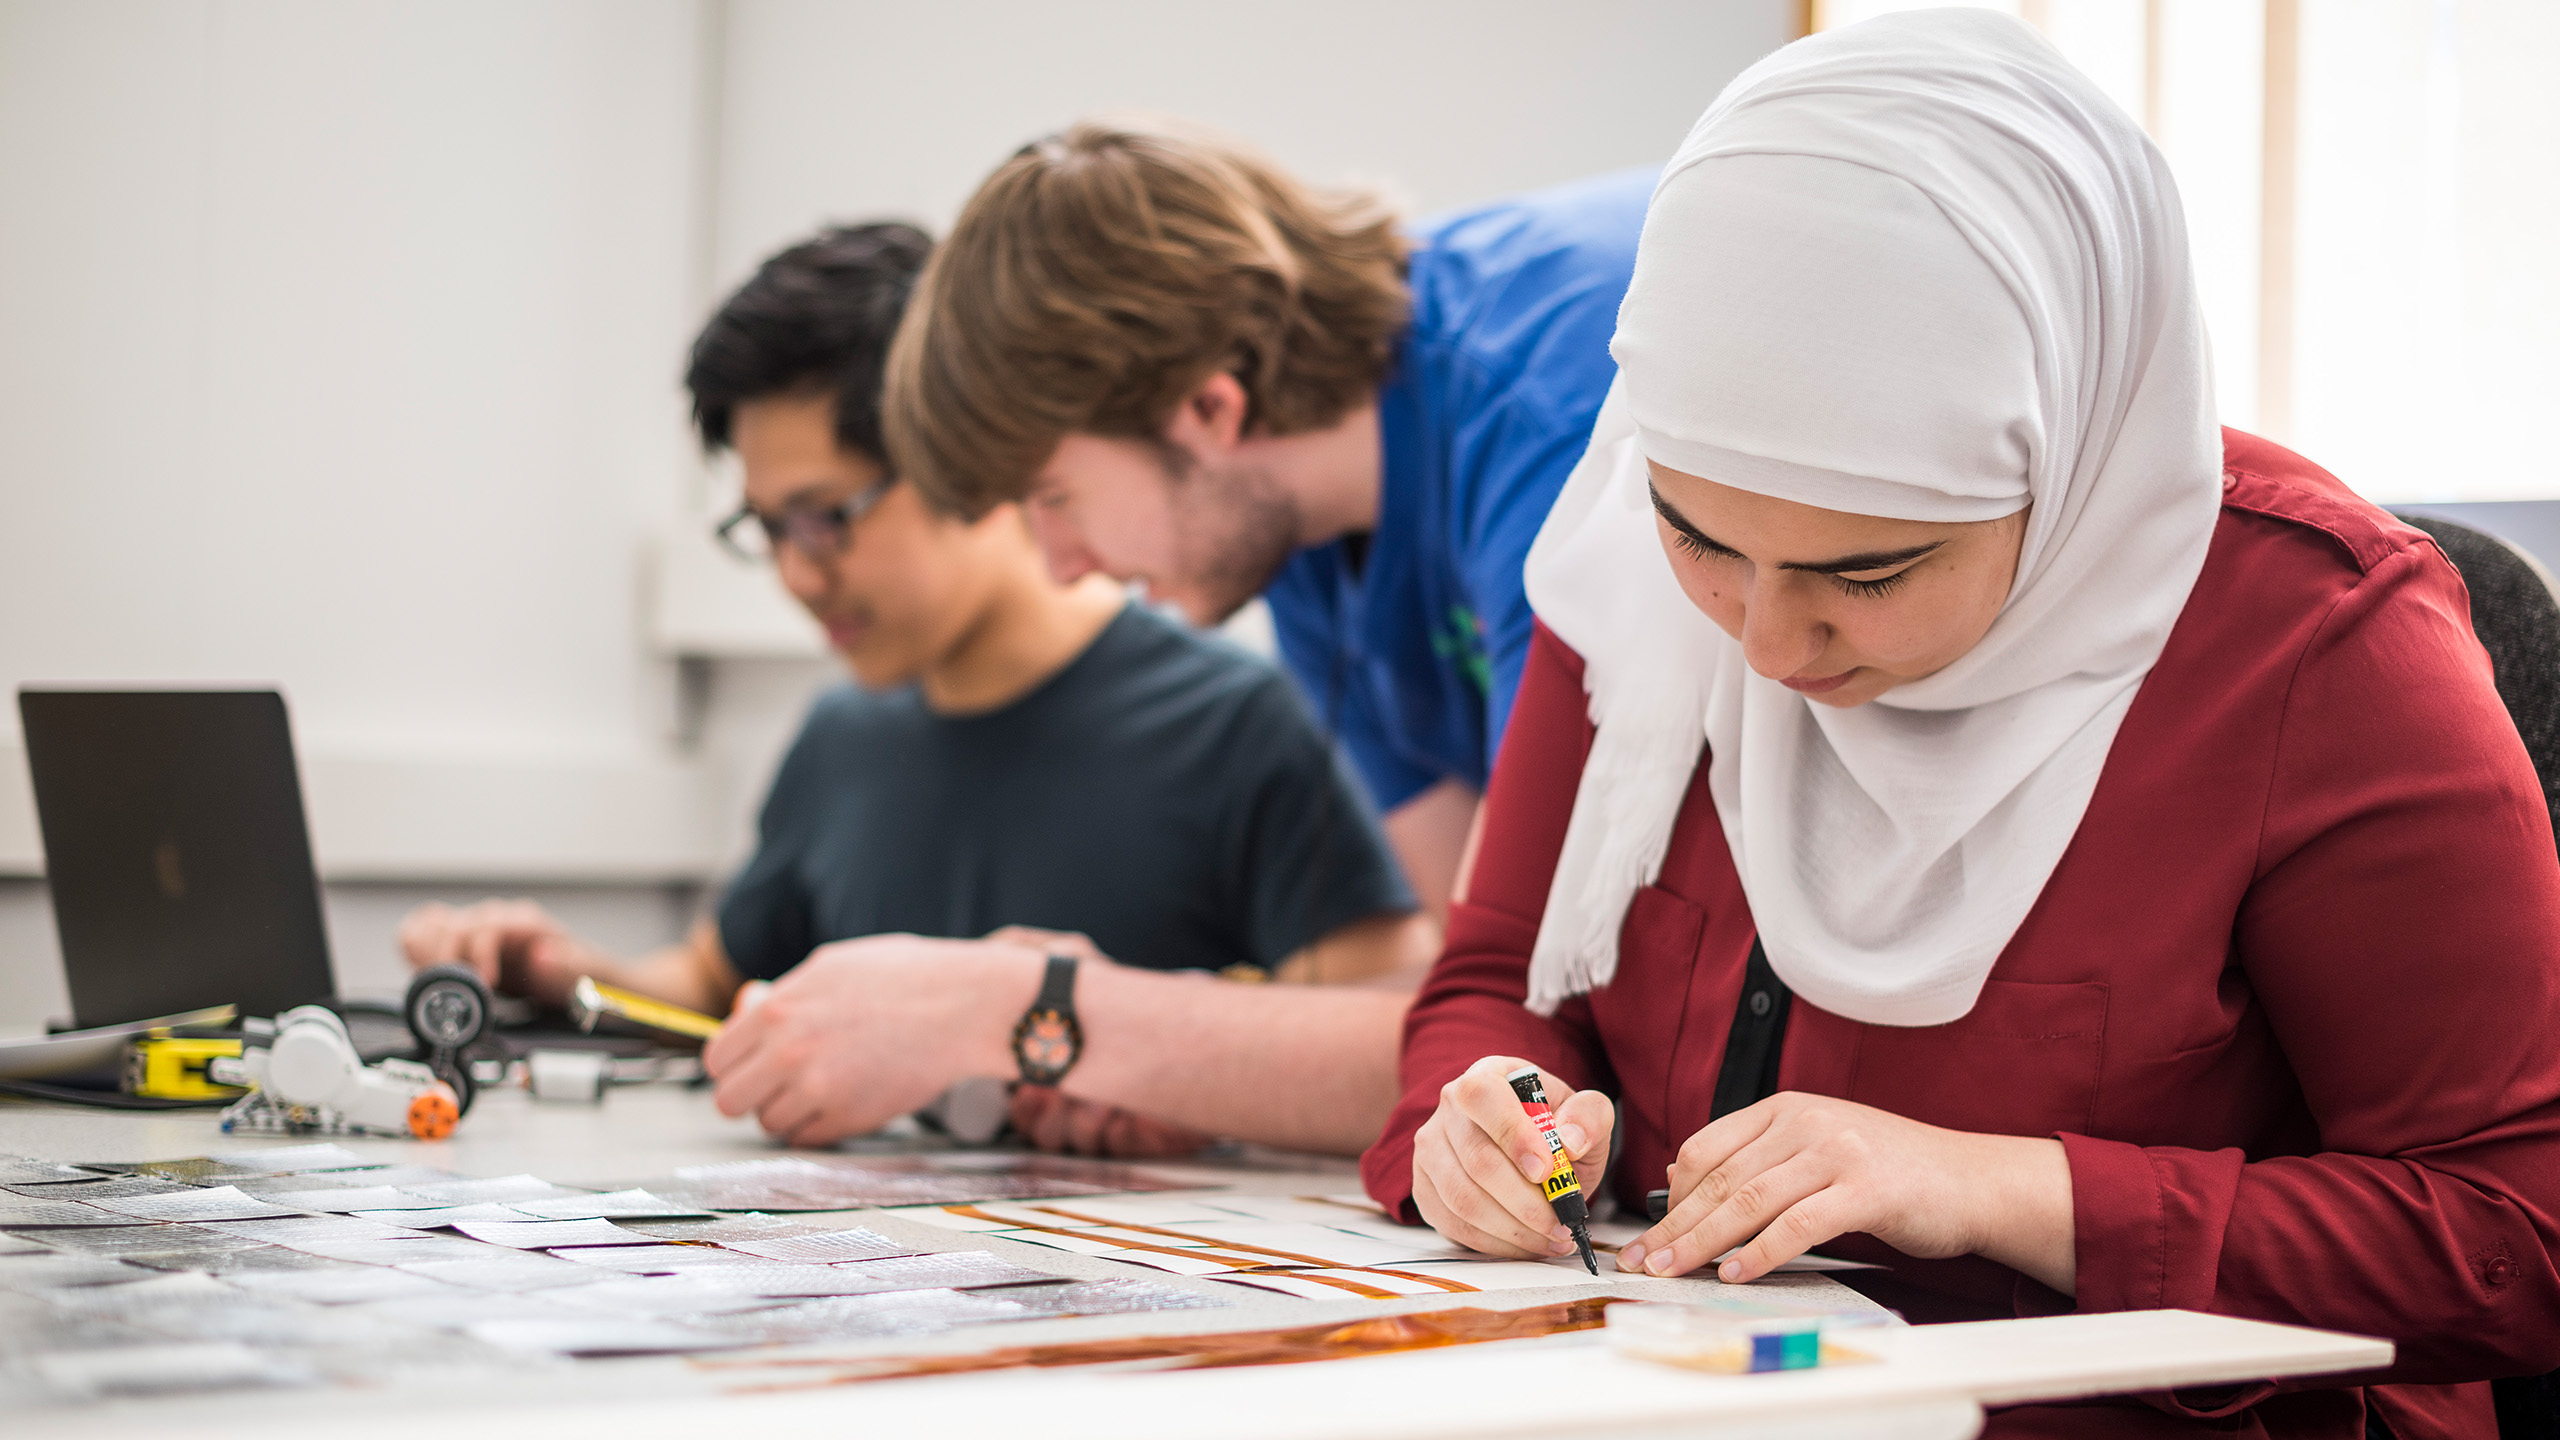 Students, two male and one female, working on a project